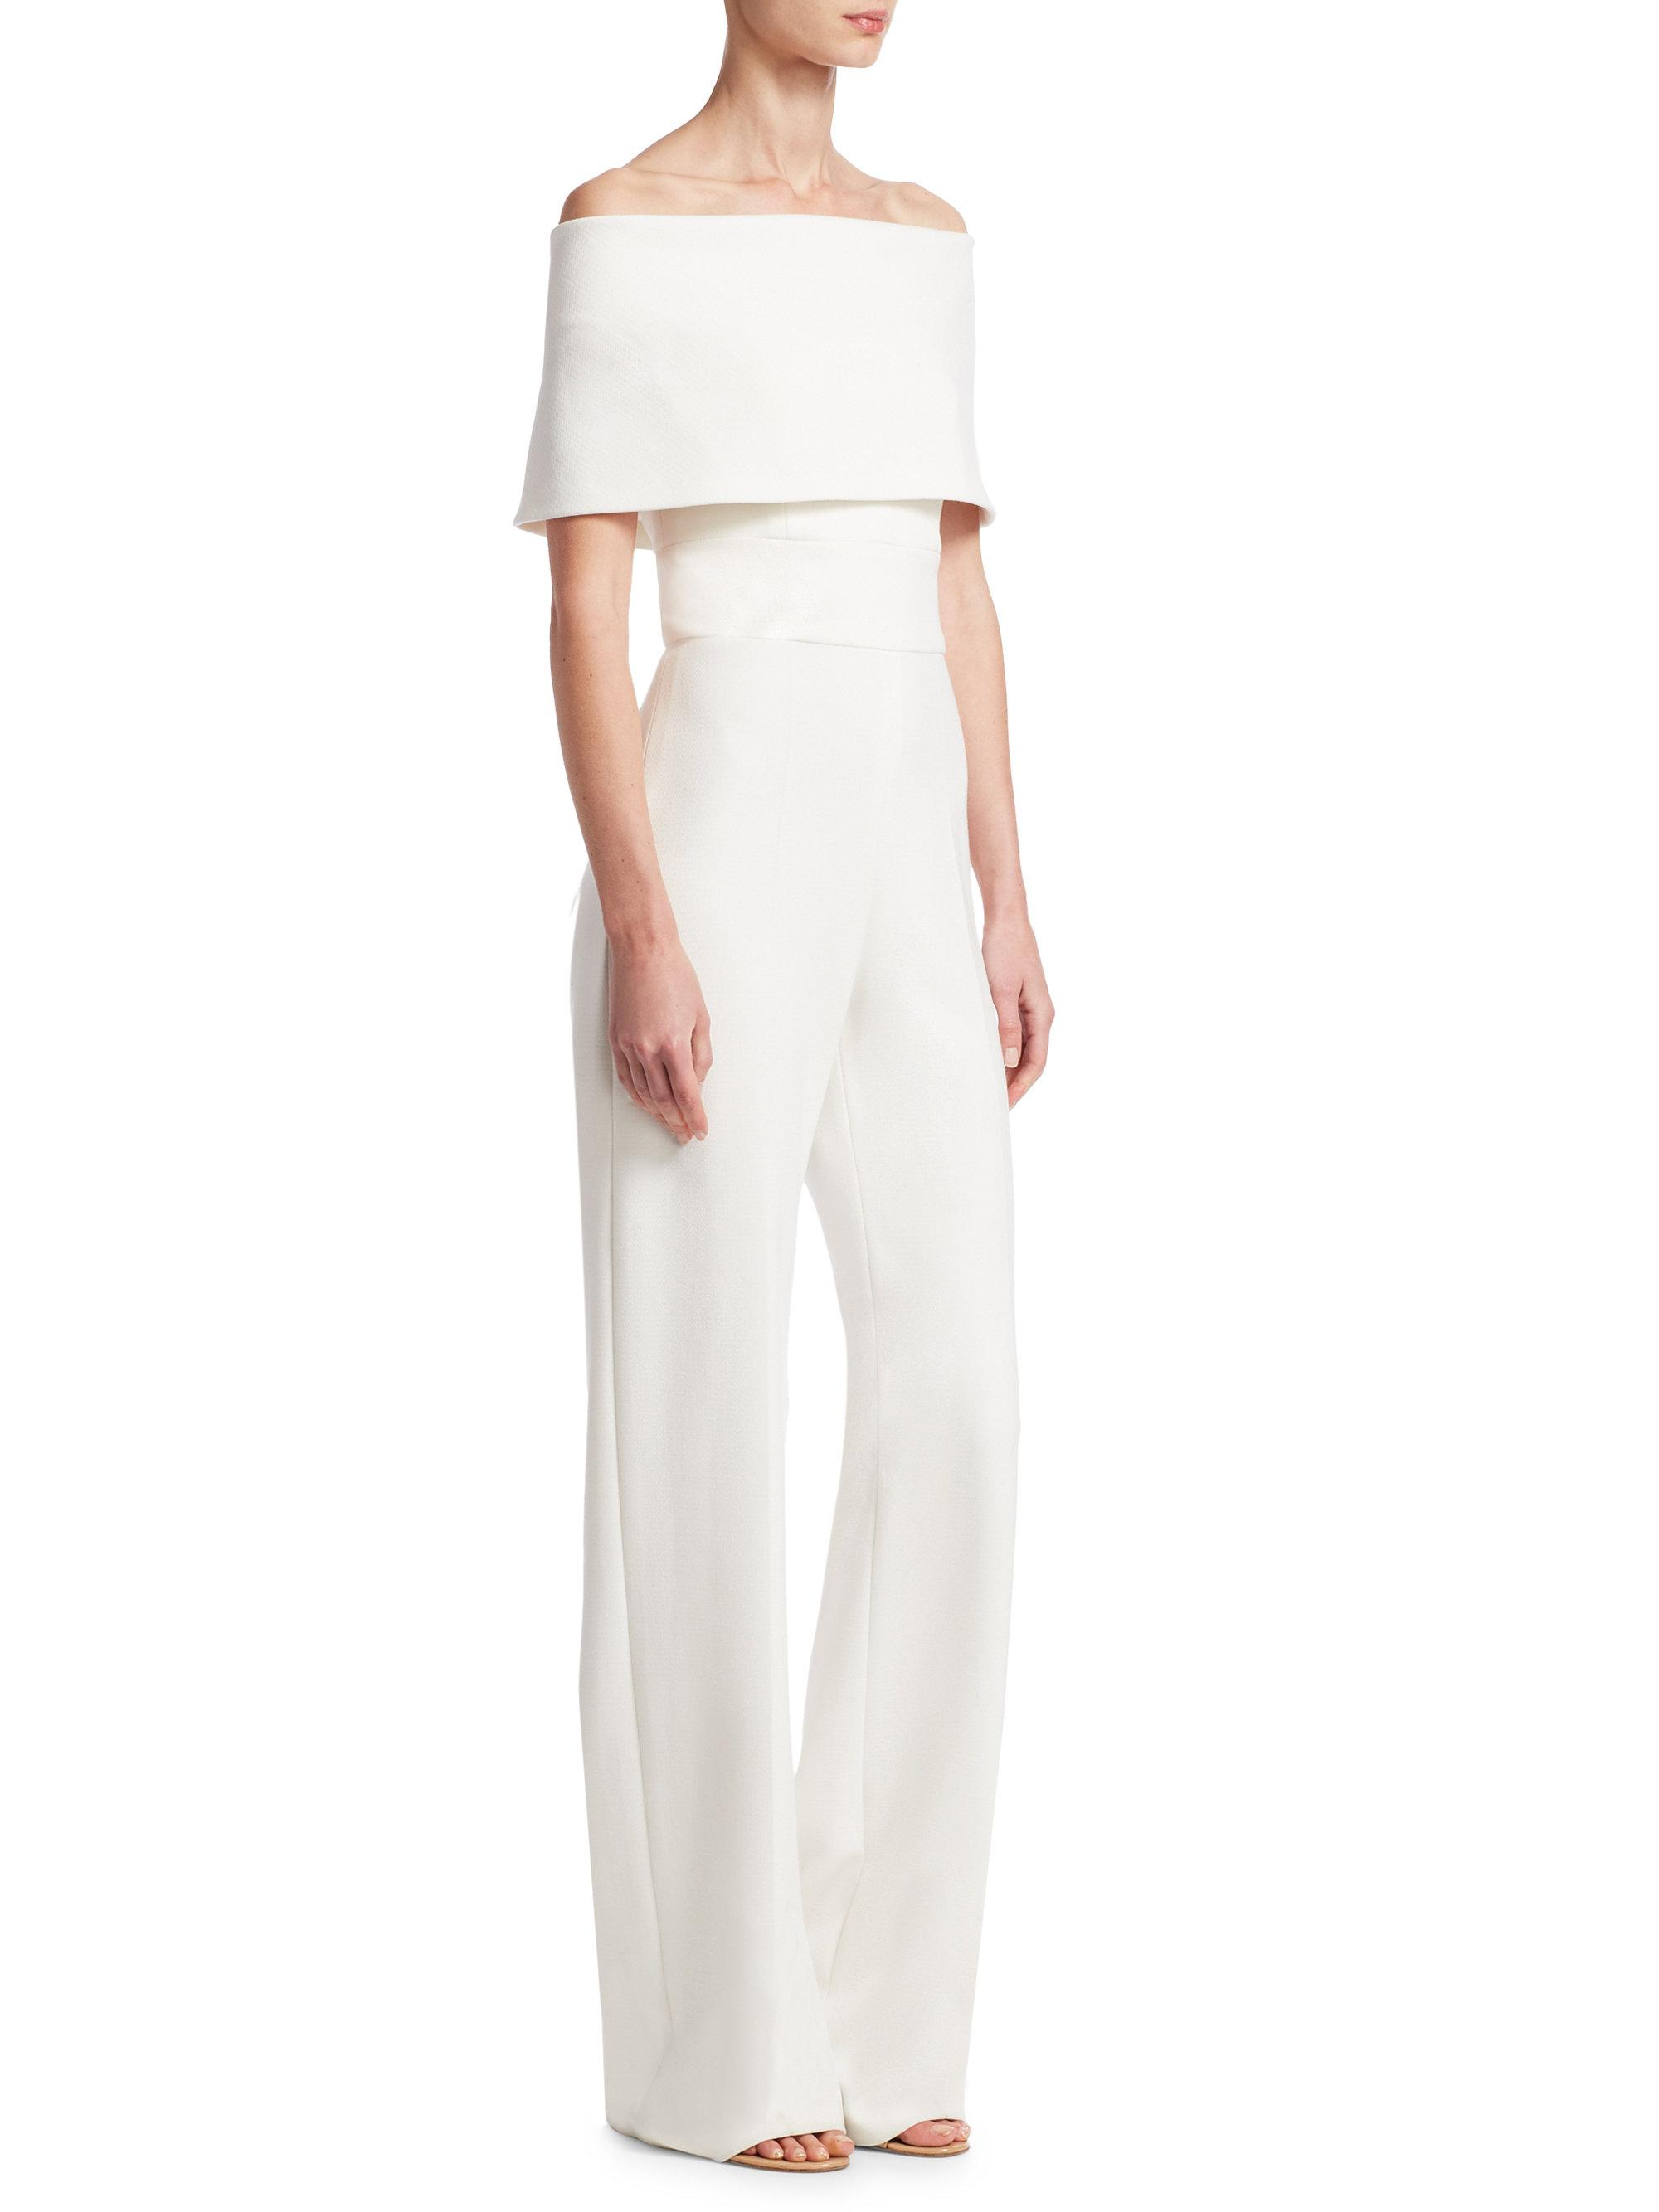 88ed4ae48a7 Lyst - Lela Rose Off-the-shoulder Jumpsuit in White